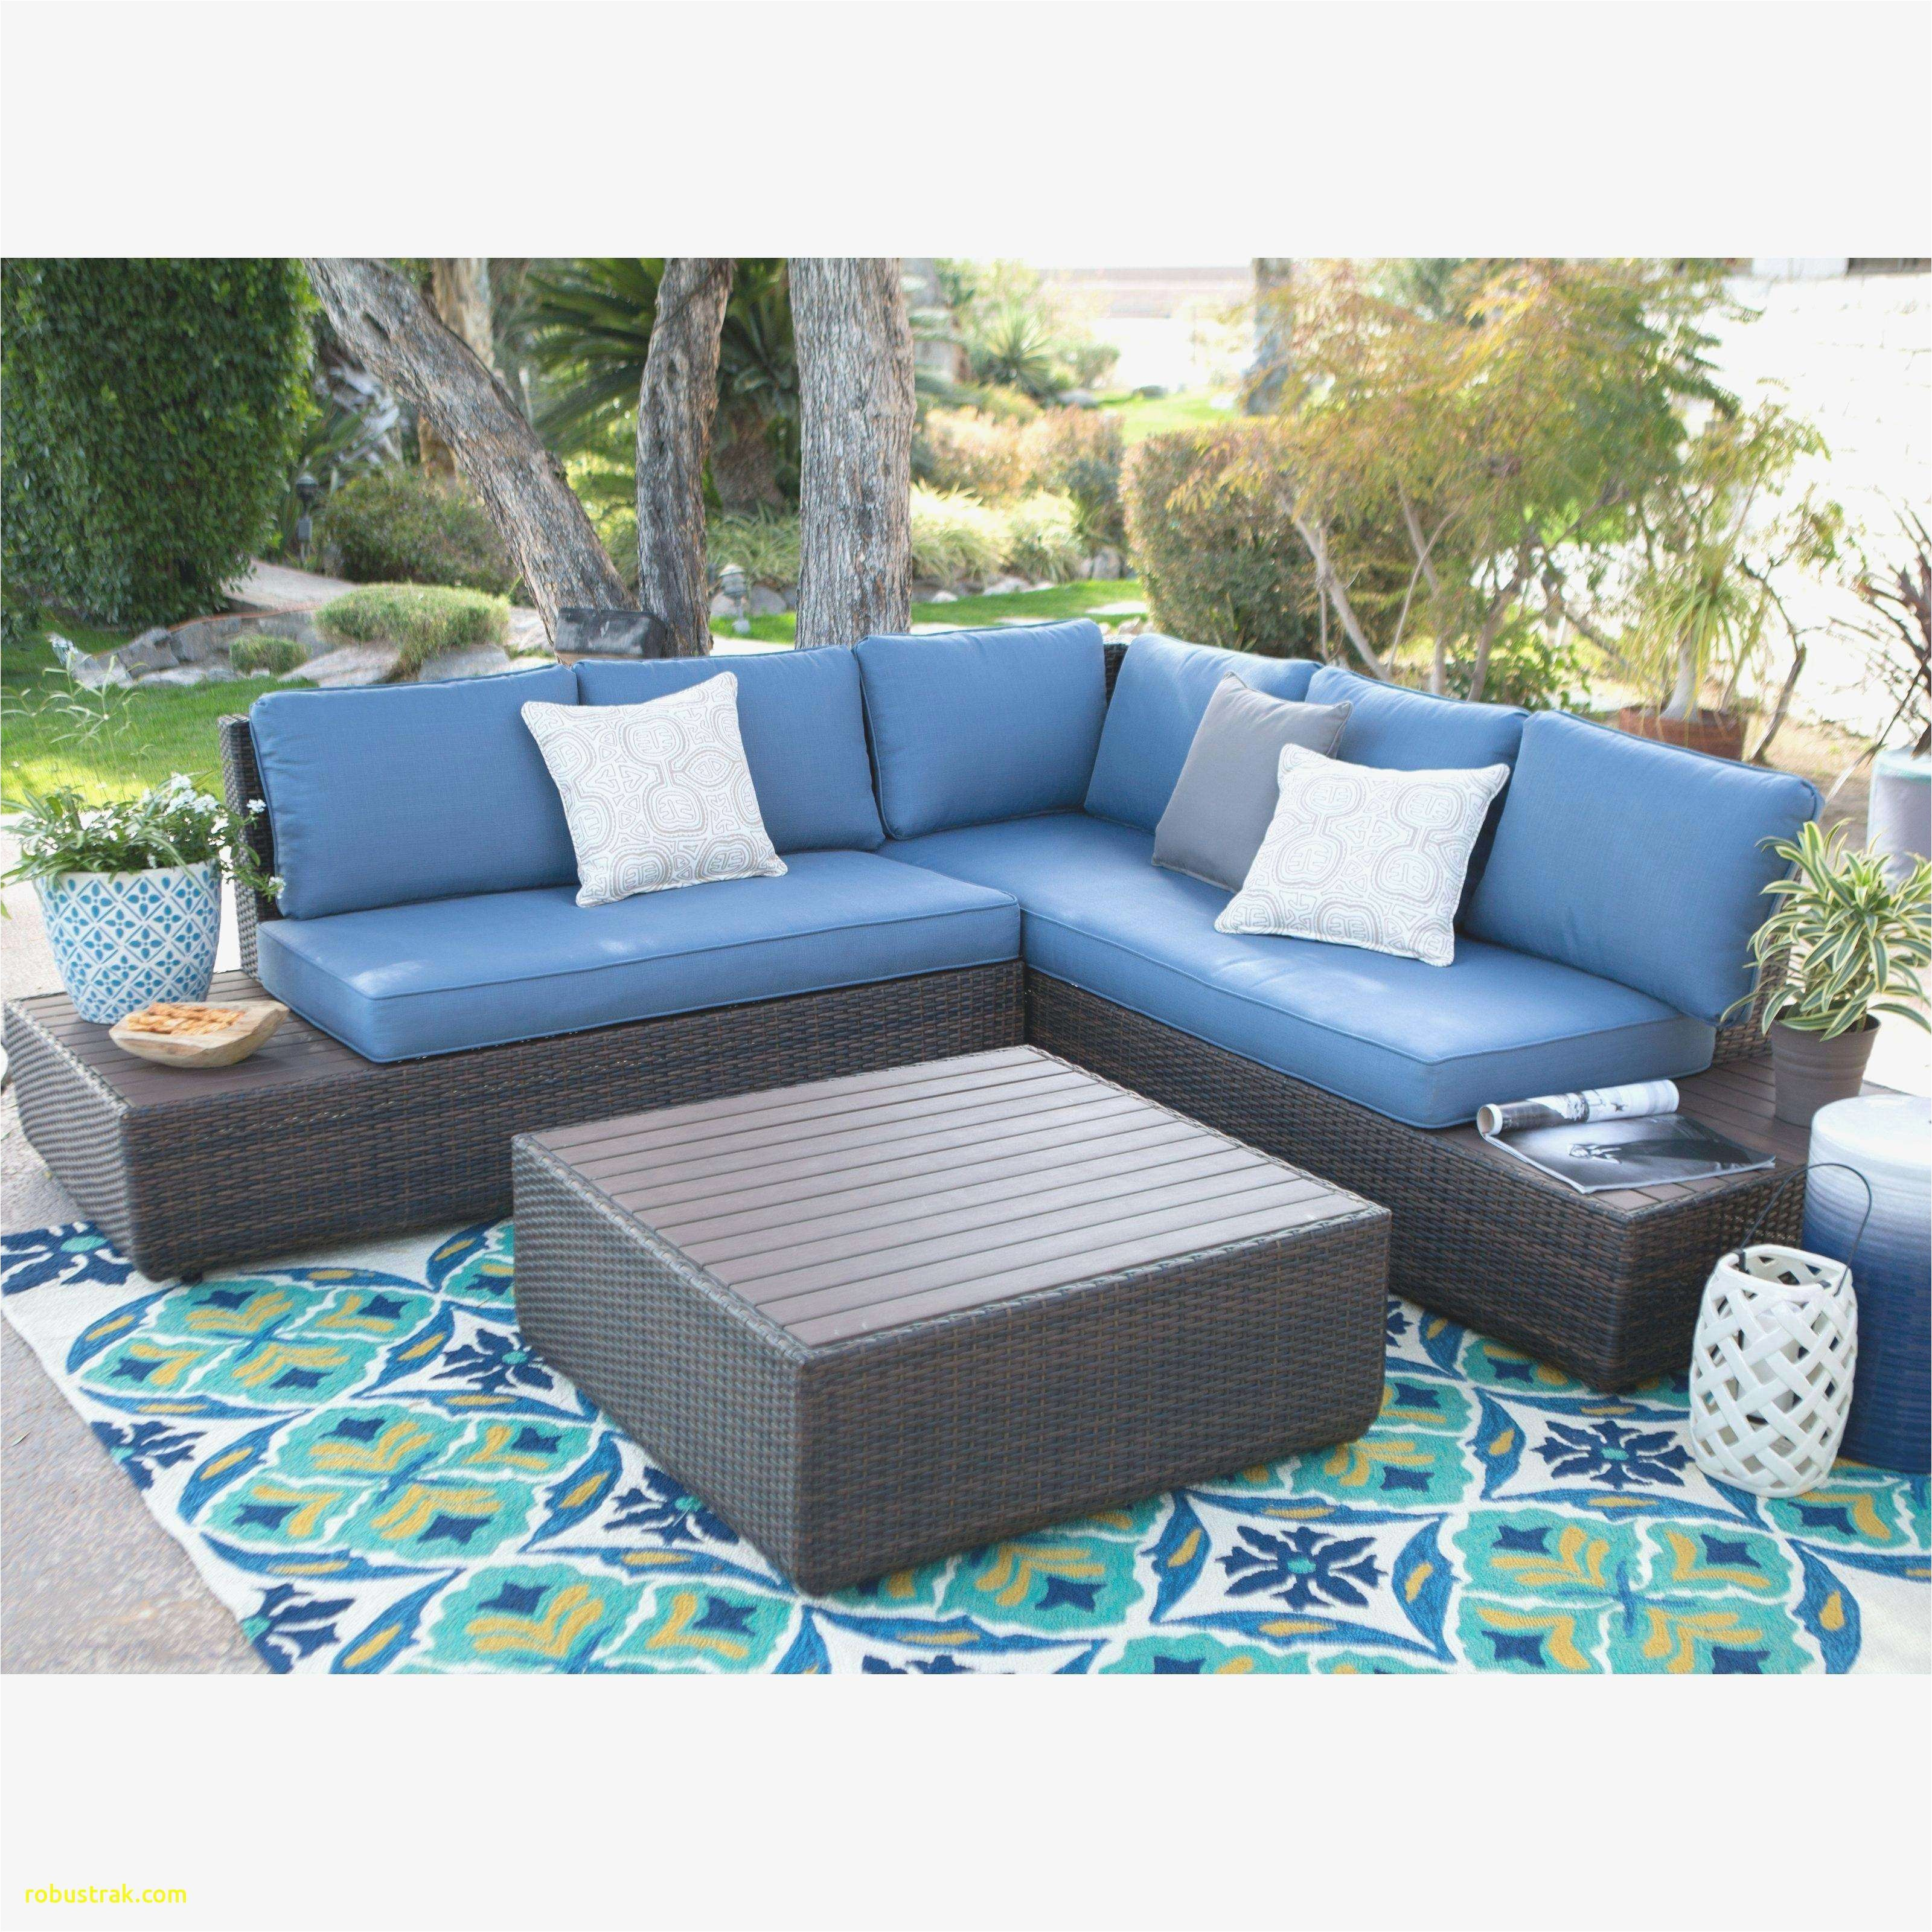 lazy boy furniture sale luxury wicker outdoor sofa 0d patio chairs sale replacement cushions lovely luxury sectional sofas from leather